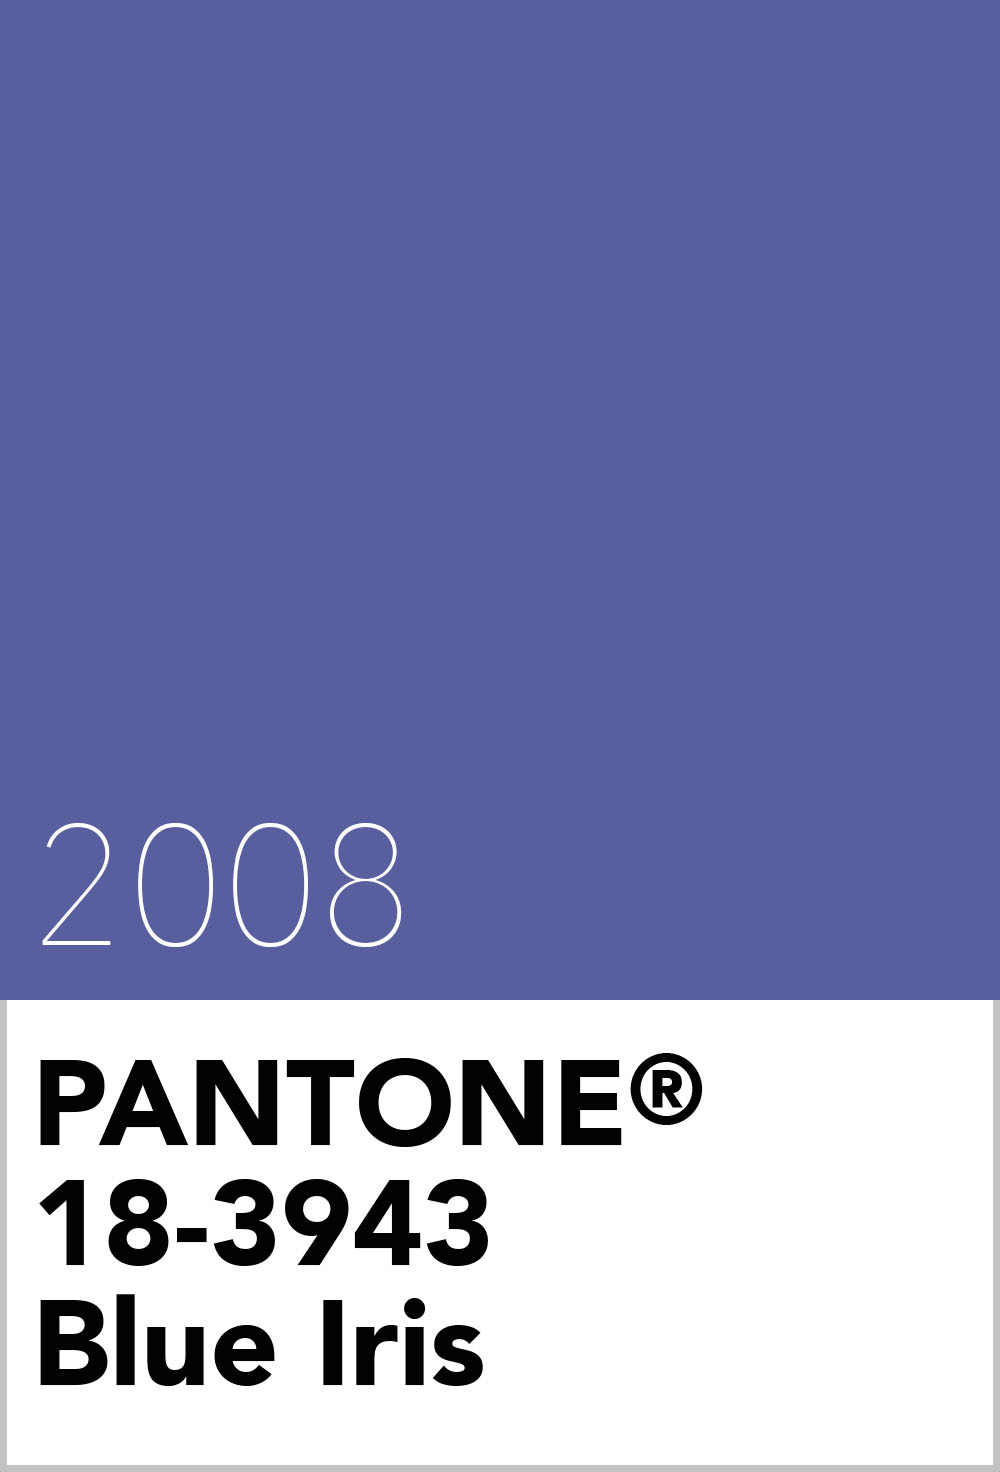 pantone colour of the year 2008